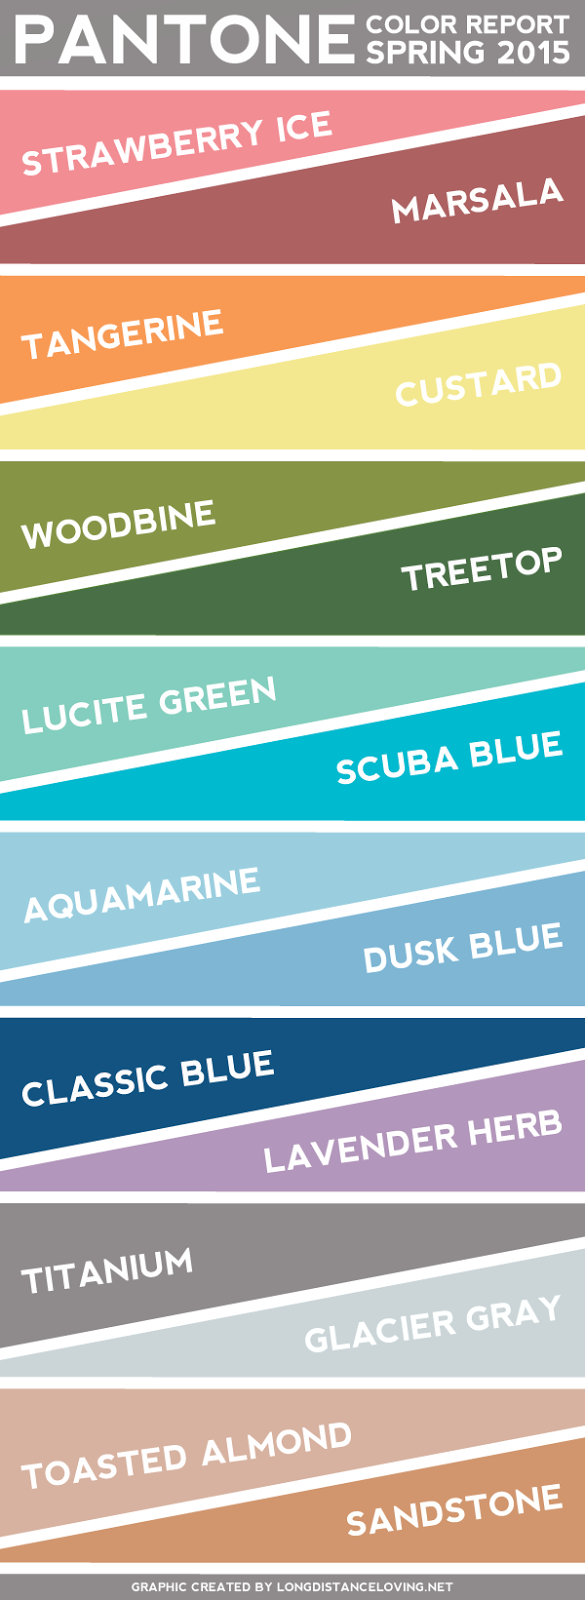 pantone color report: spring 2015 // graphic by @luvfromafar